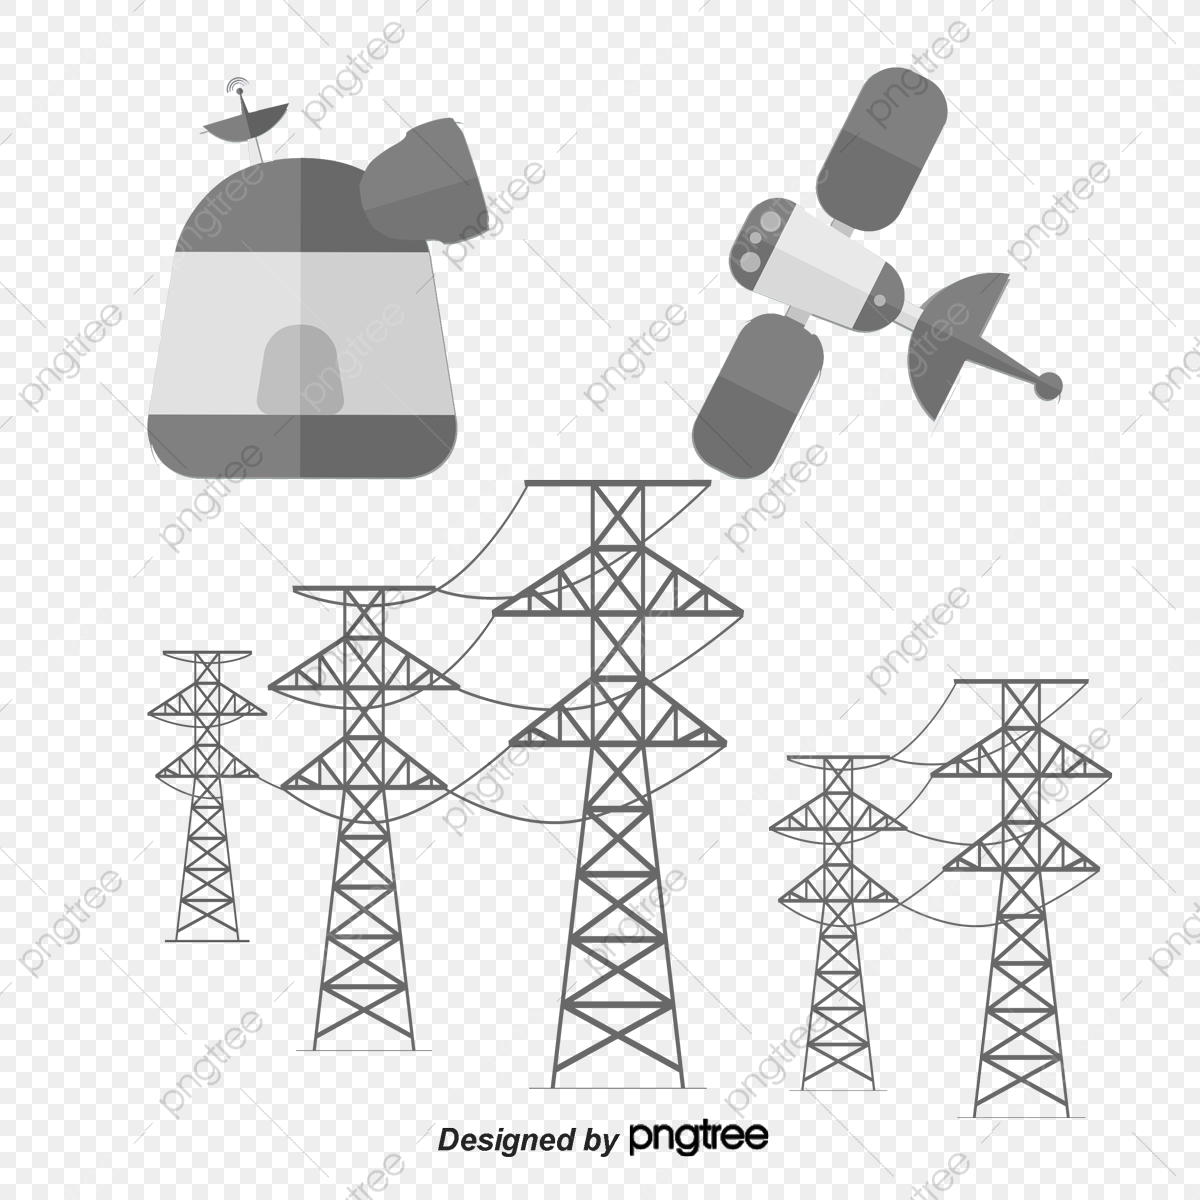 Power Plant Png Images Vector And Psd Files Free Download On Pngtree